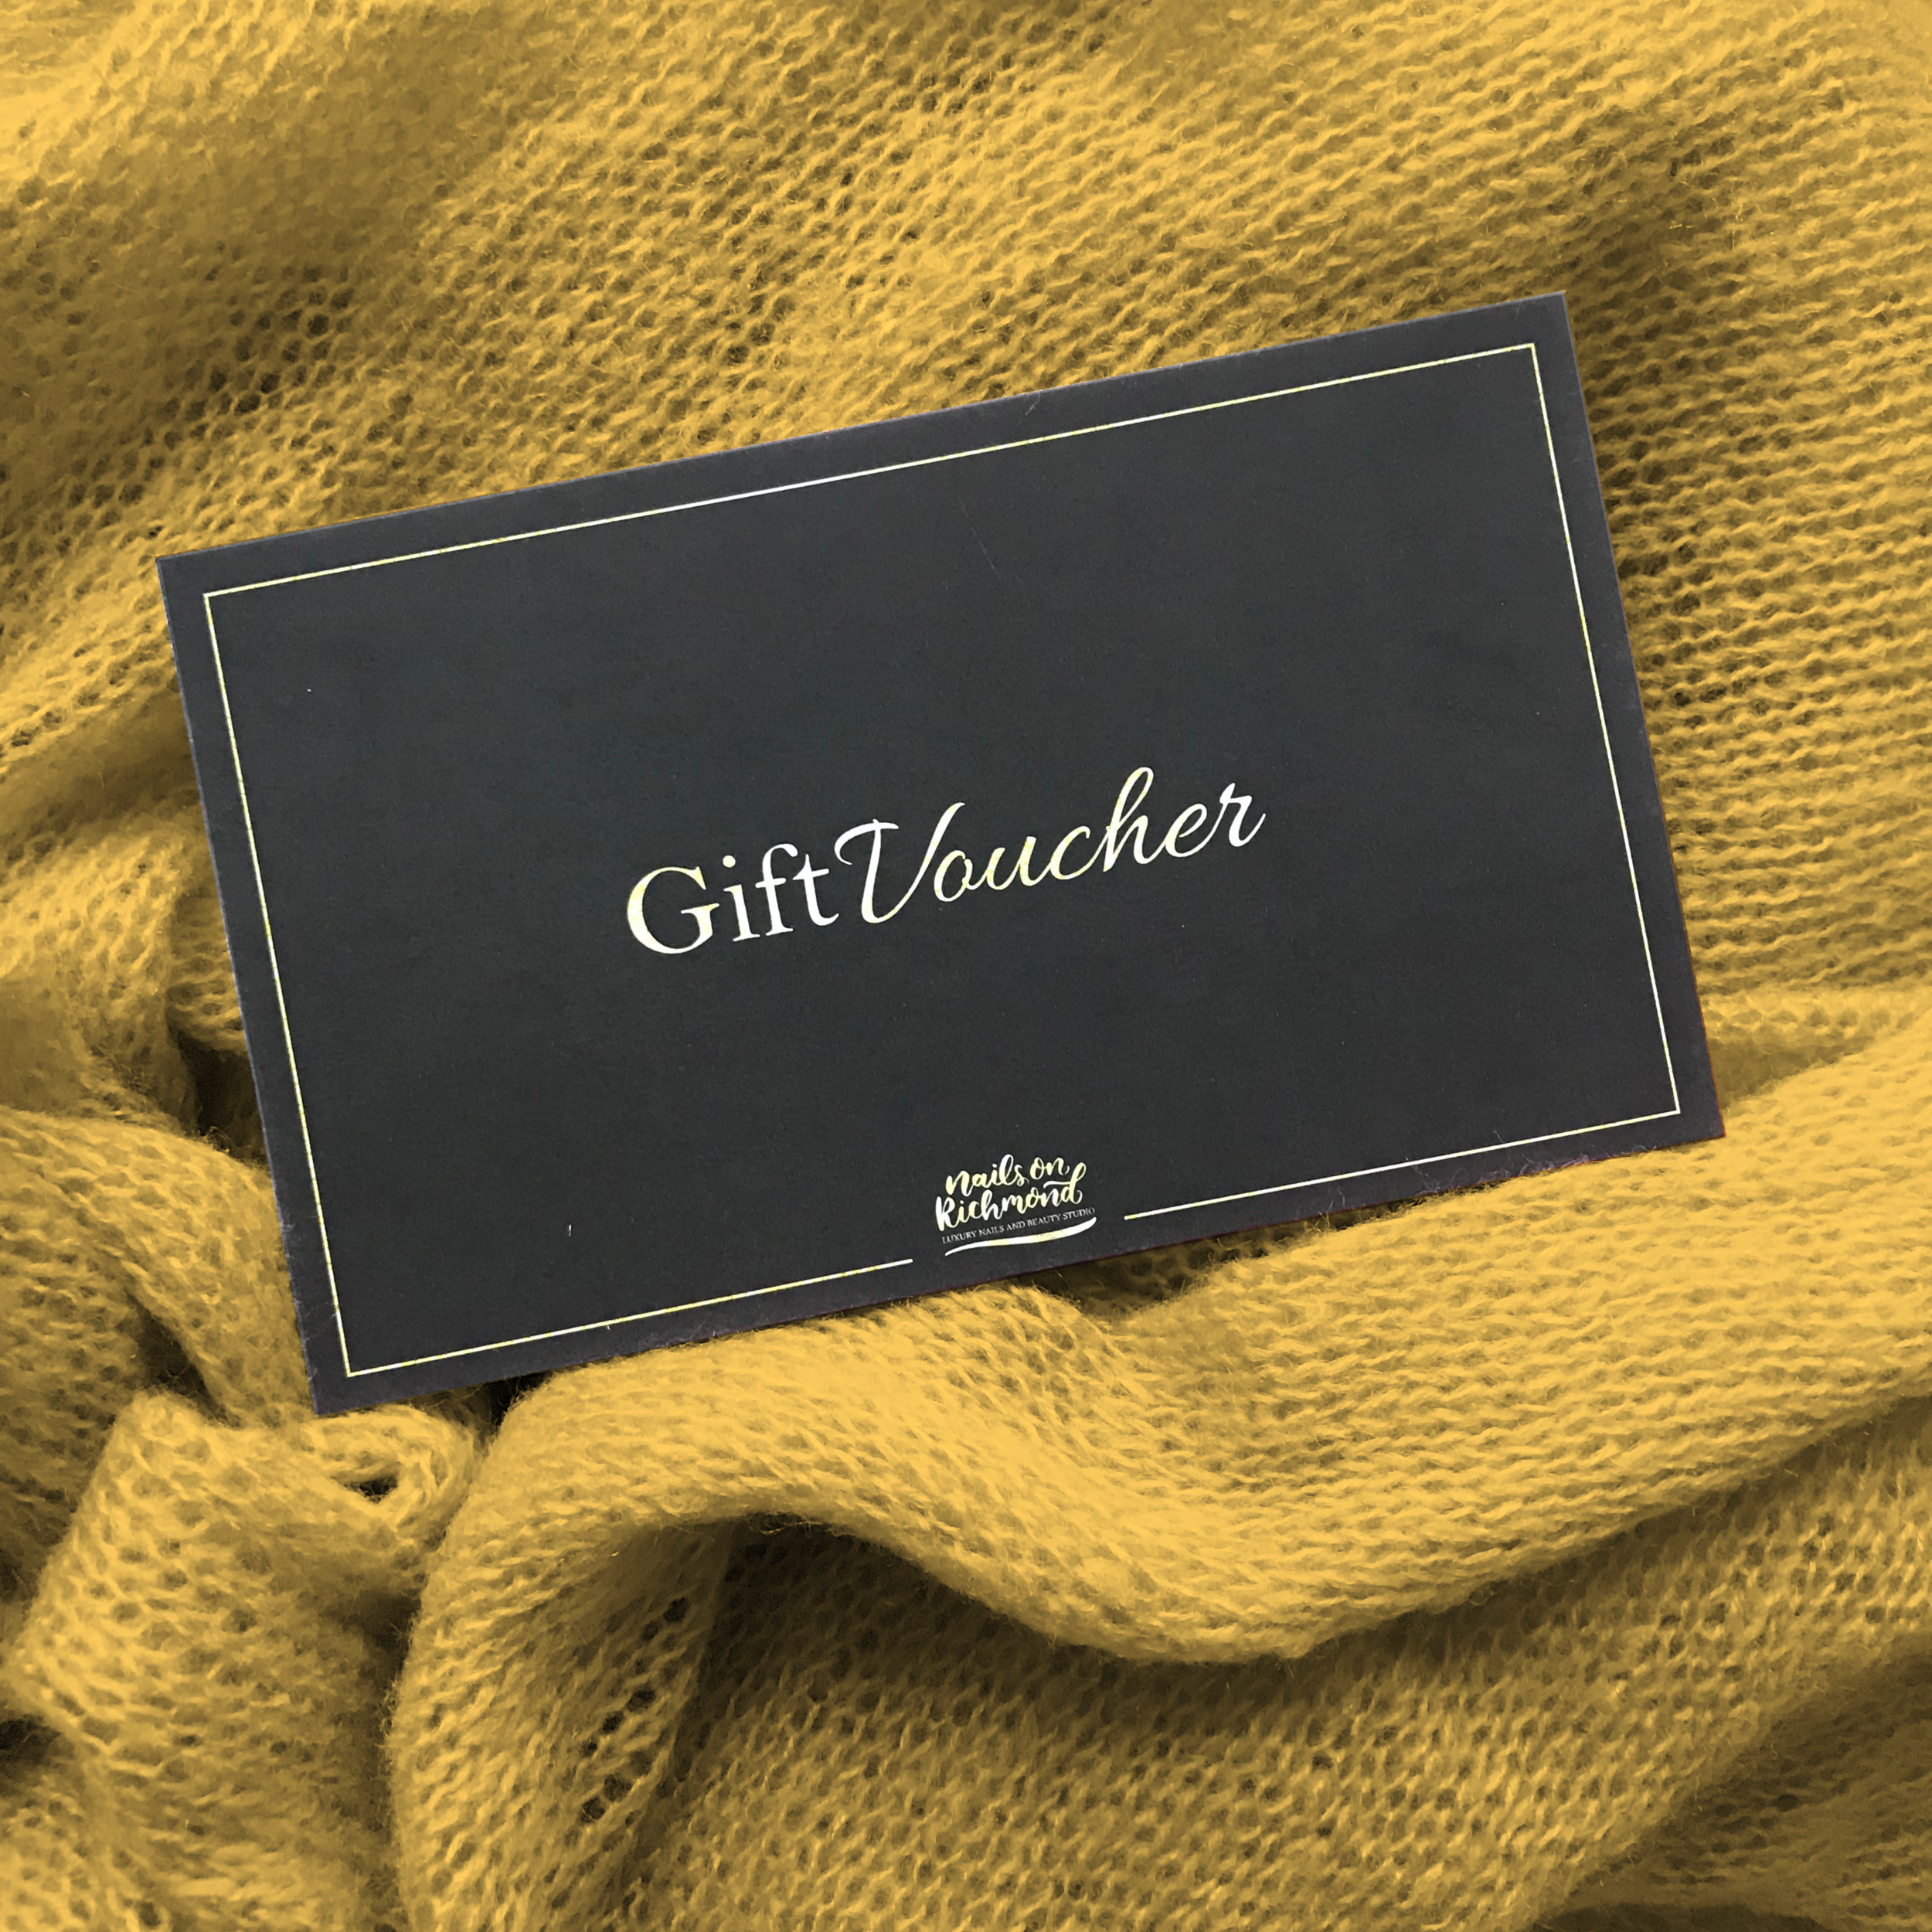 Black gift Voucher placed on a mustard throw